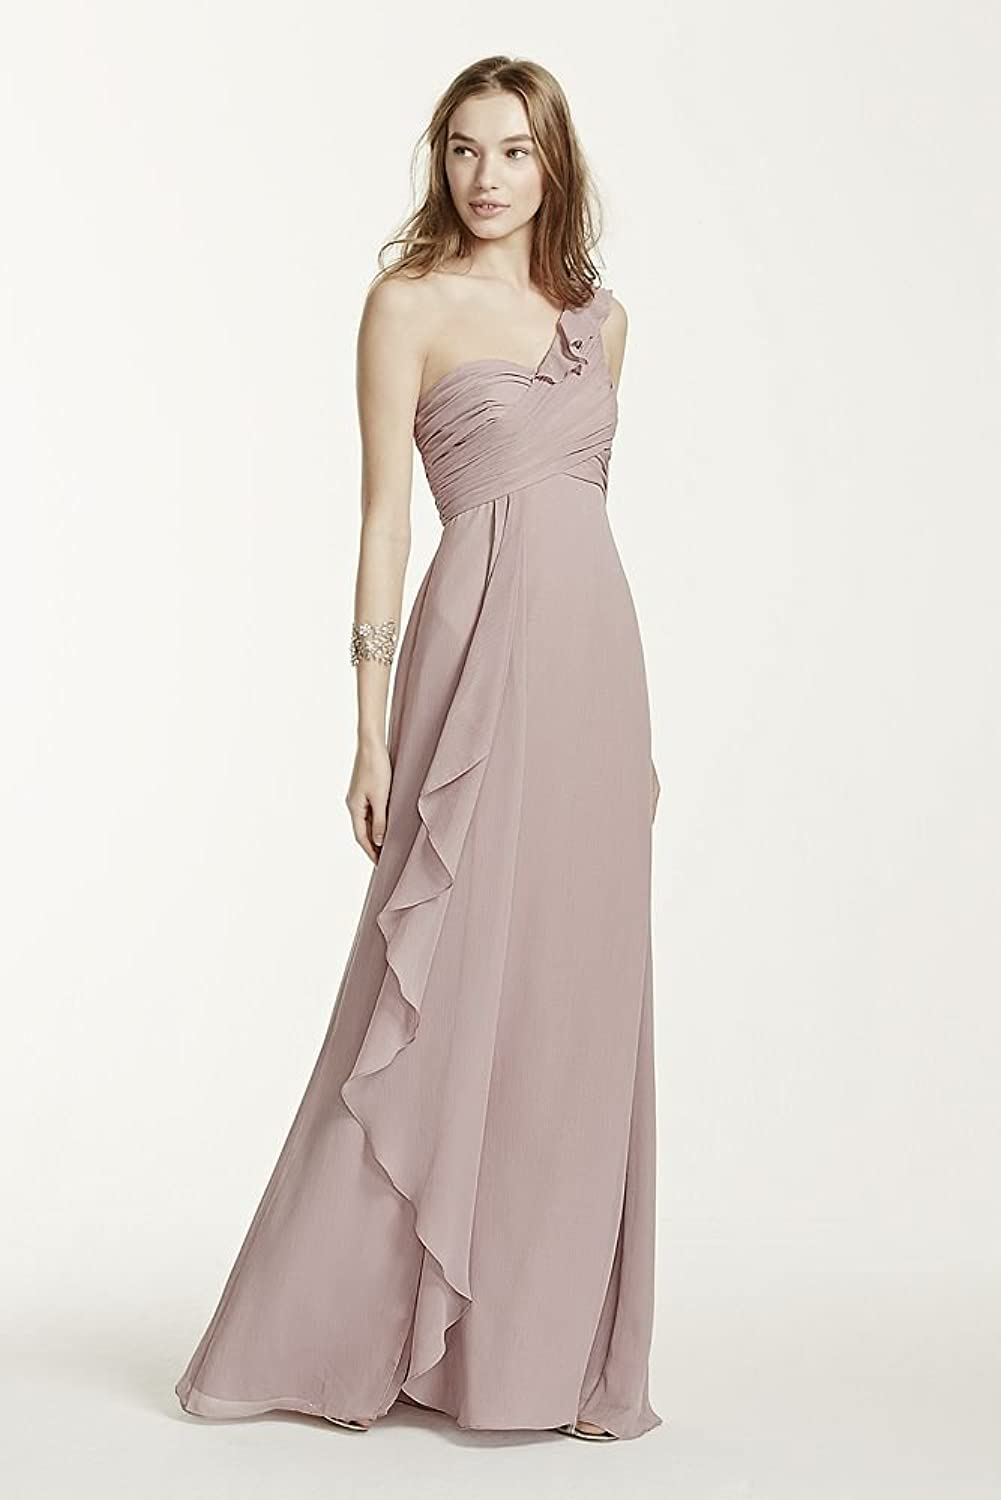 One shoulder chiffon bridesmaid dress with cascading detail style one shoulder chiffon bridesmaid dress with cascading detail style f15734 at amazon womens clothing store ombrellifo Choice Image